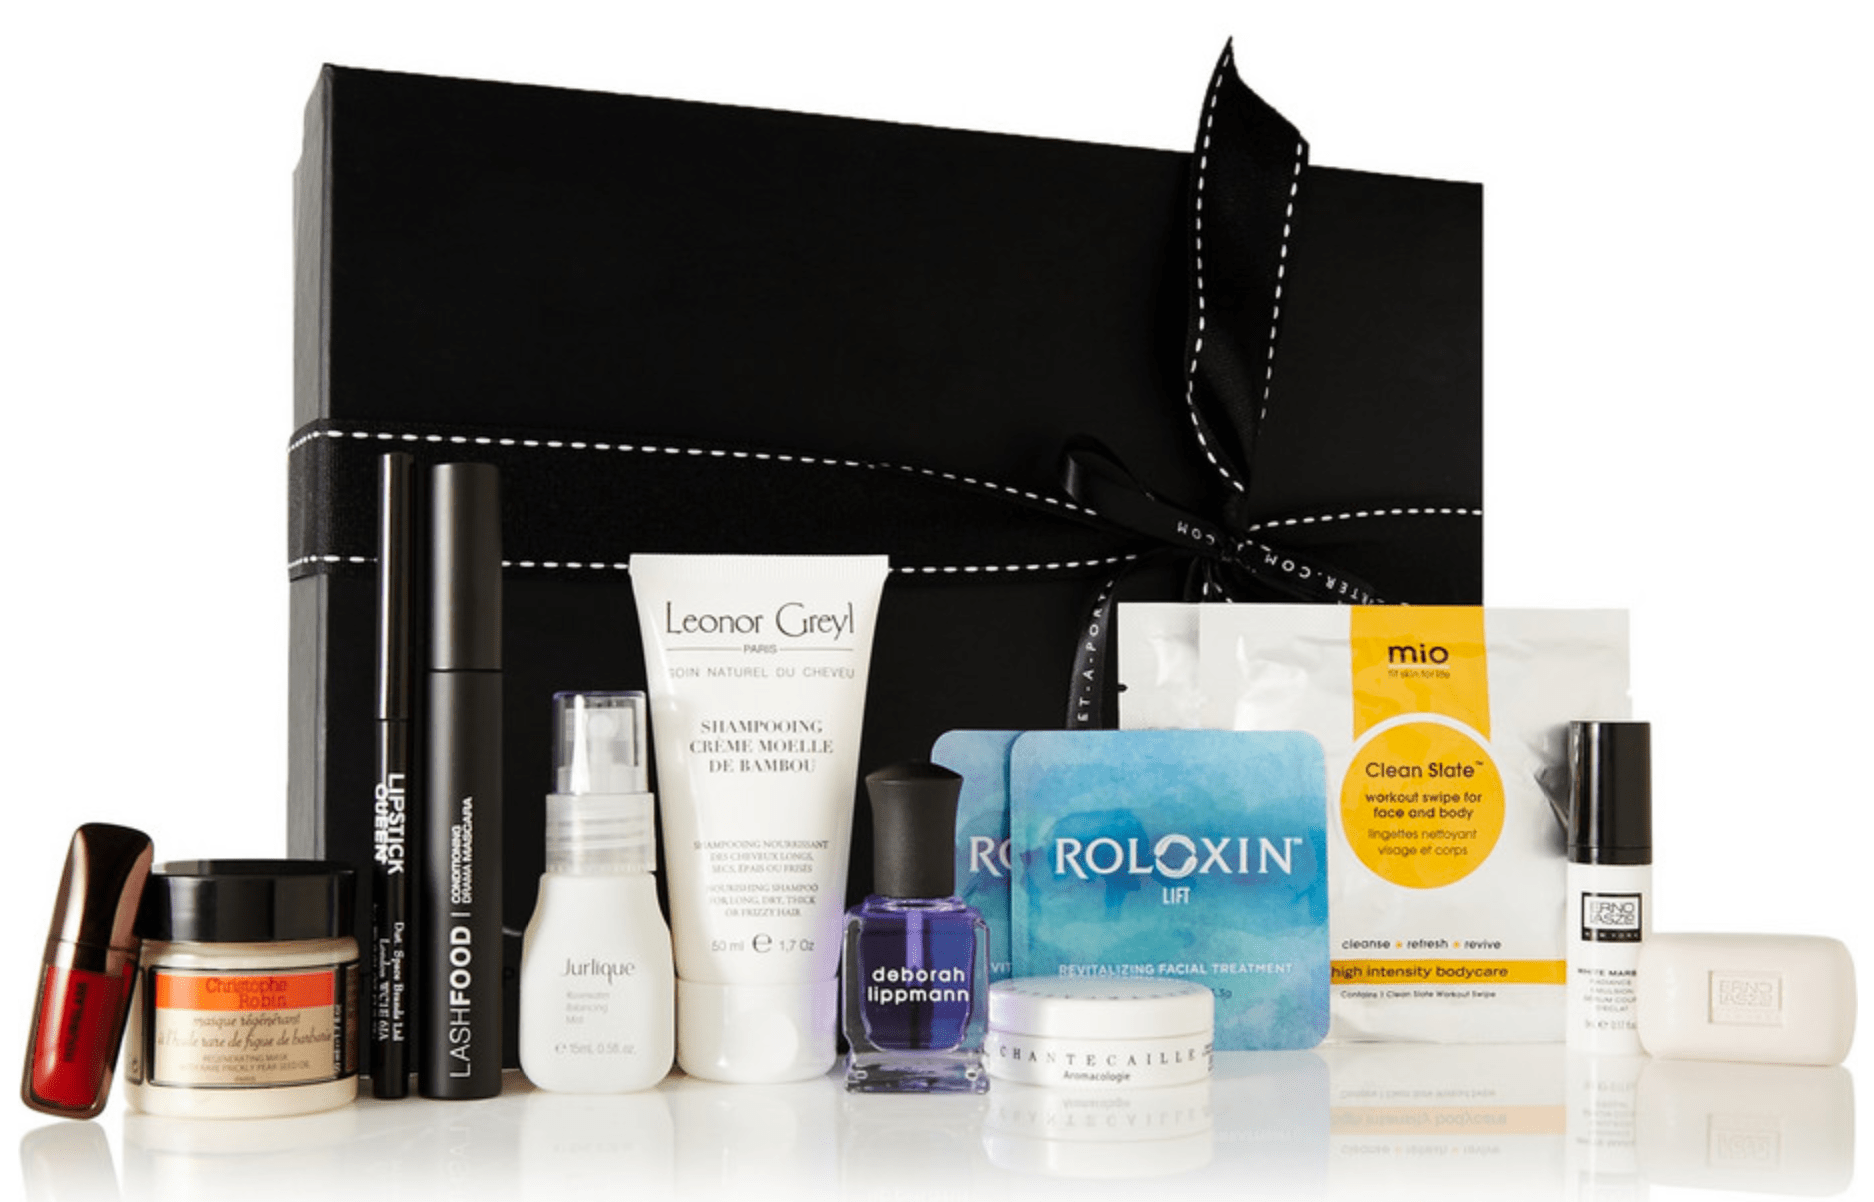 Le Meilleur Net A Porter Travel Kit Limited Edition Box Available Now Ce Mois Ci